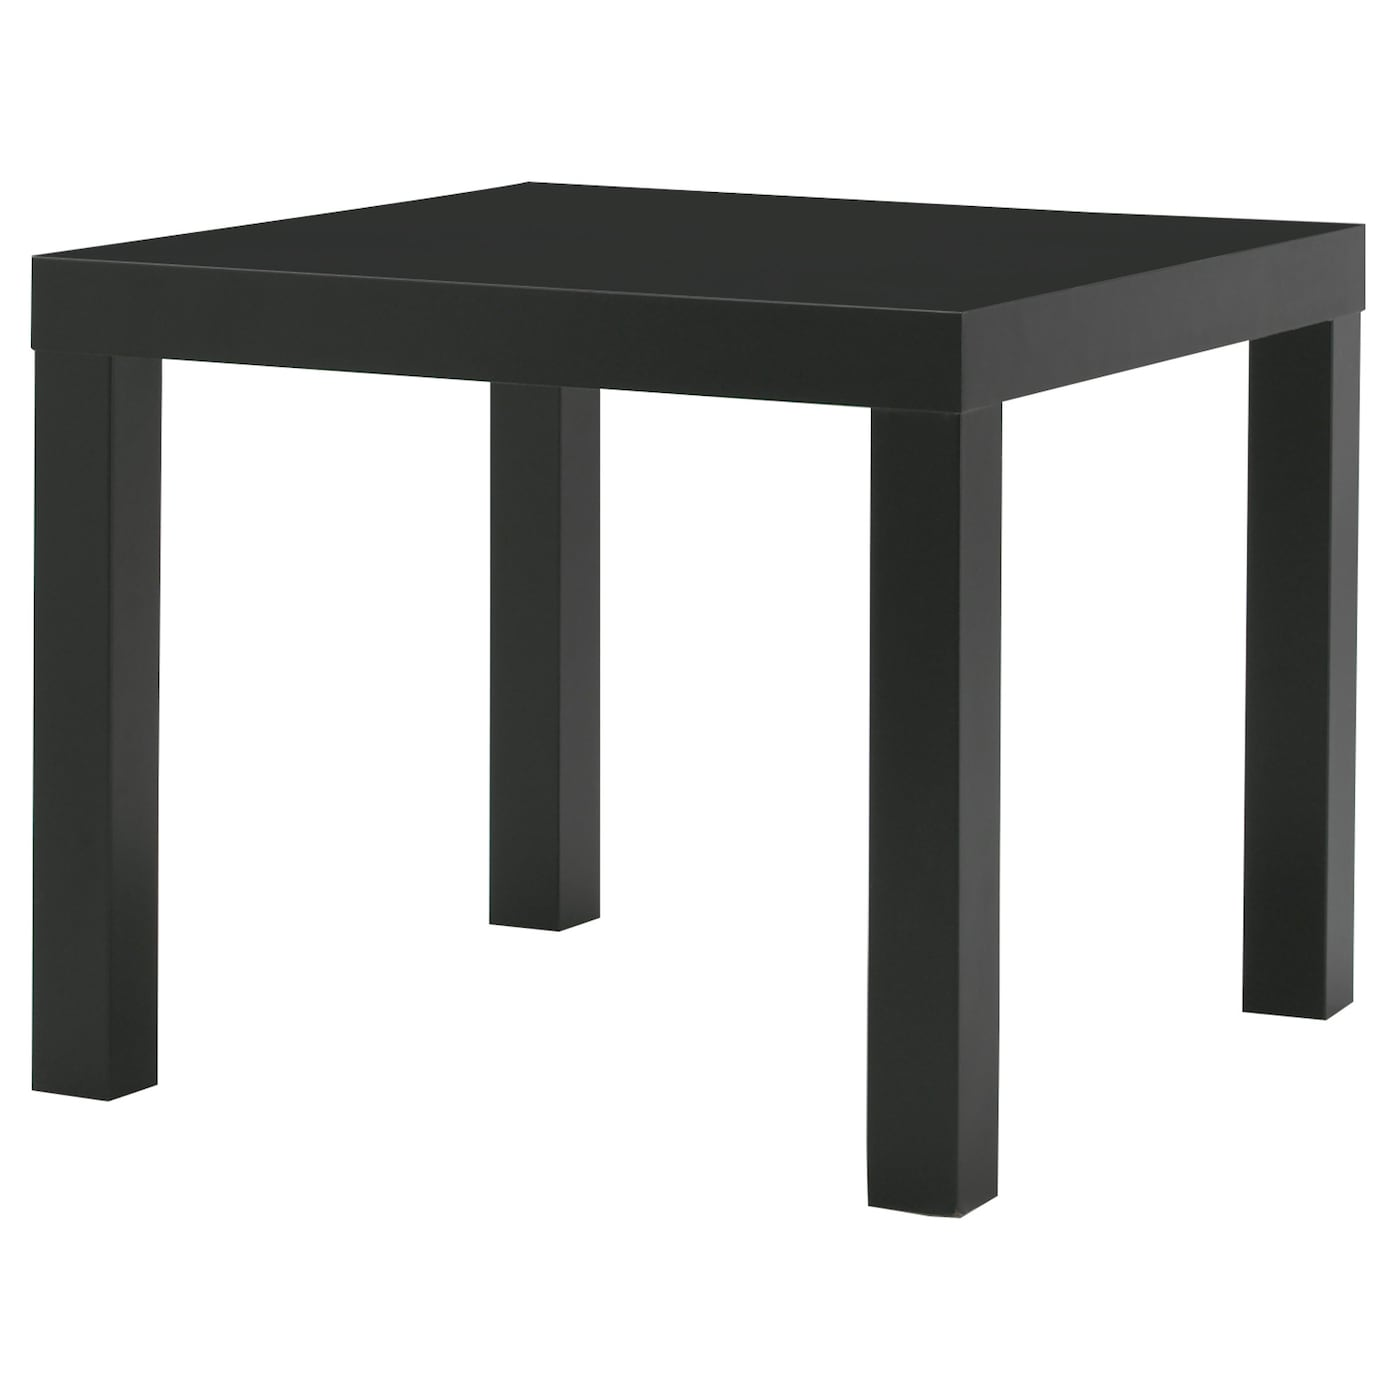 LACK Side Table Black 55 X 55 Cm